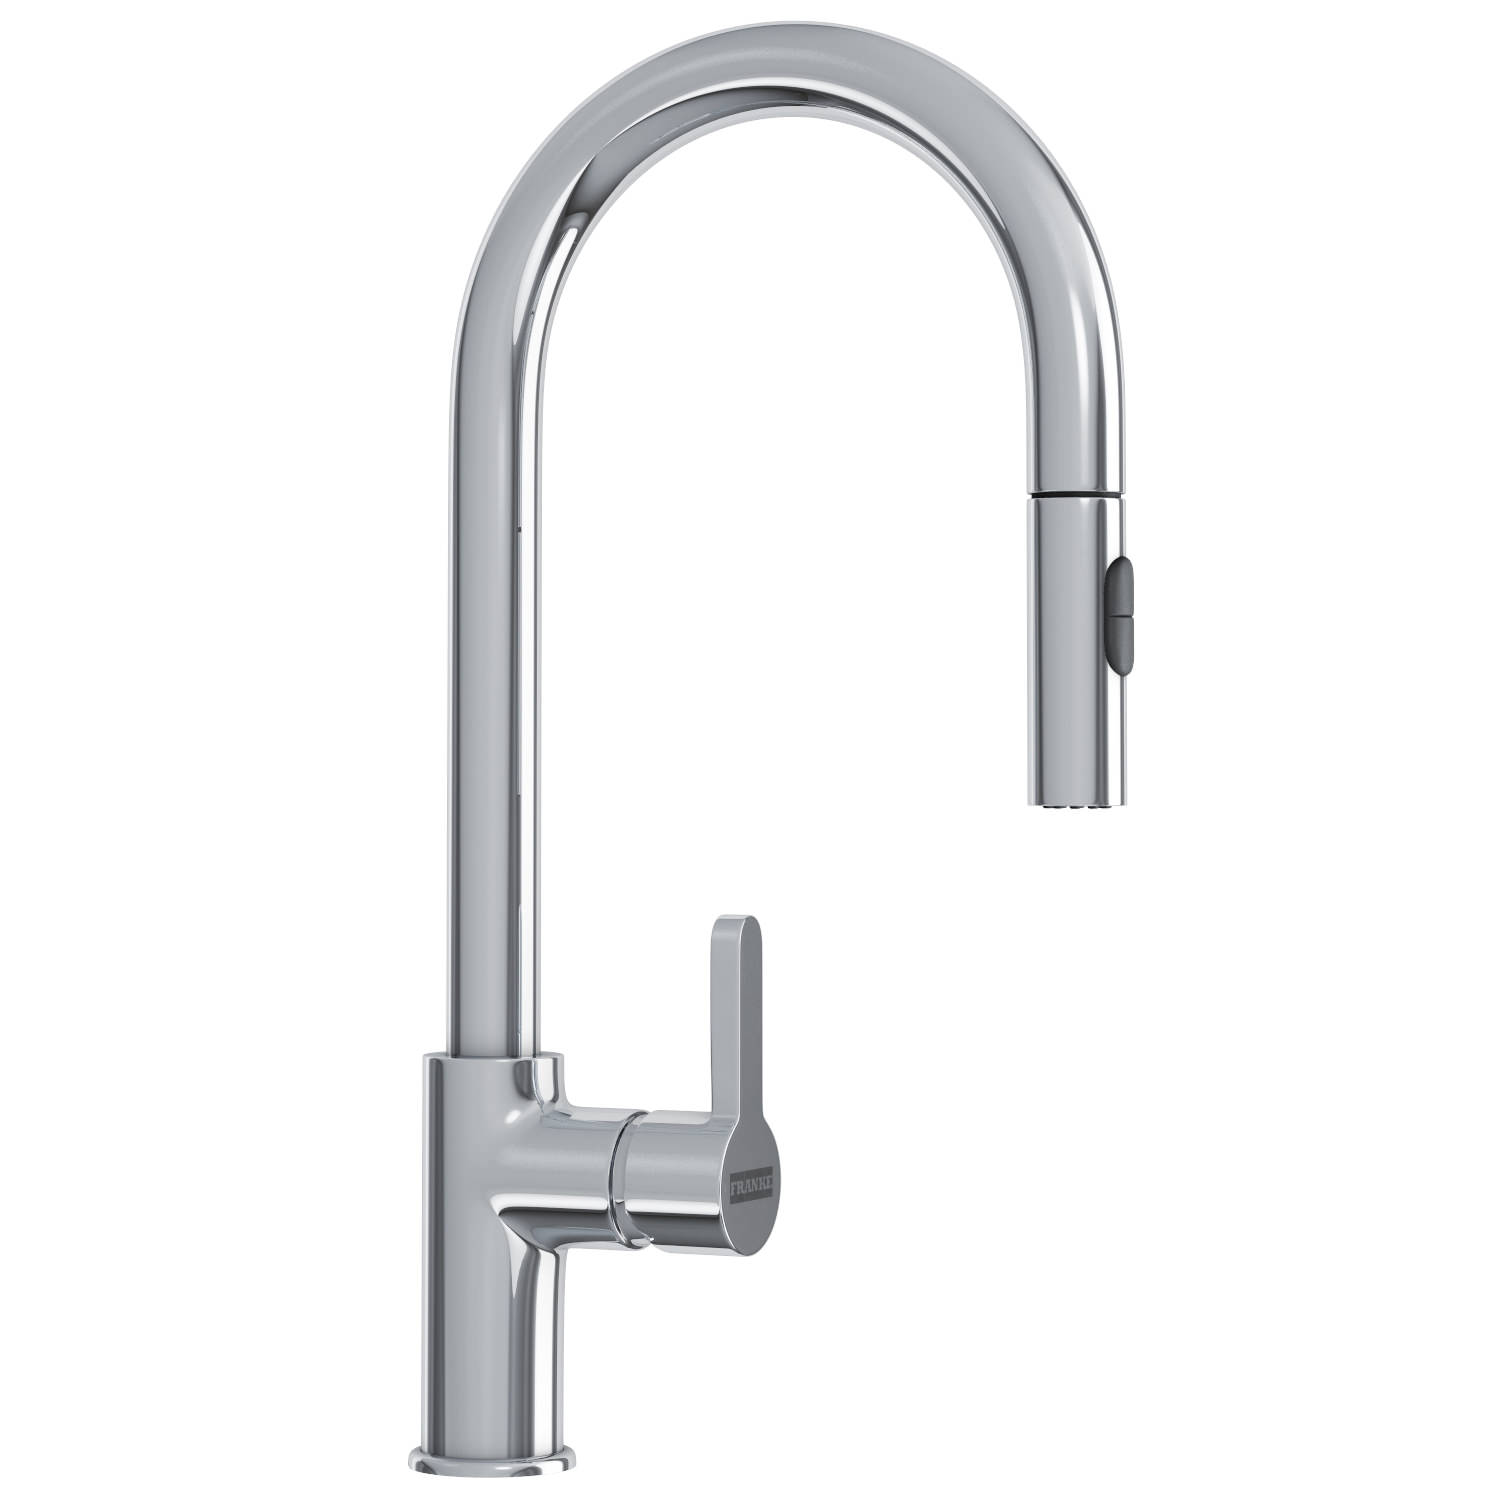 Pull Out Sink Mixer Franke Arena Pull Out Spray Kitchen Sink Mixer Tap Chrome